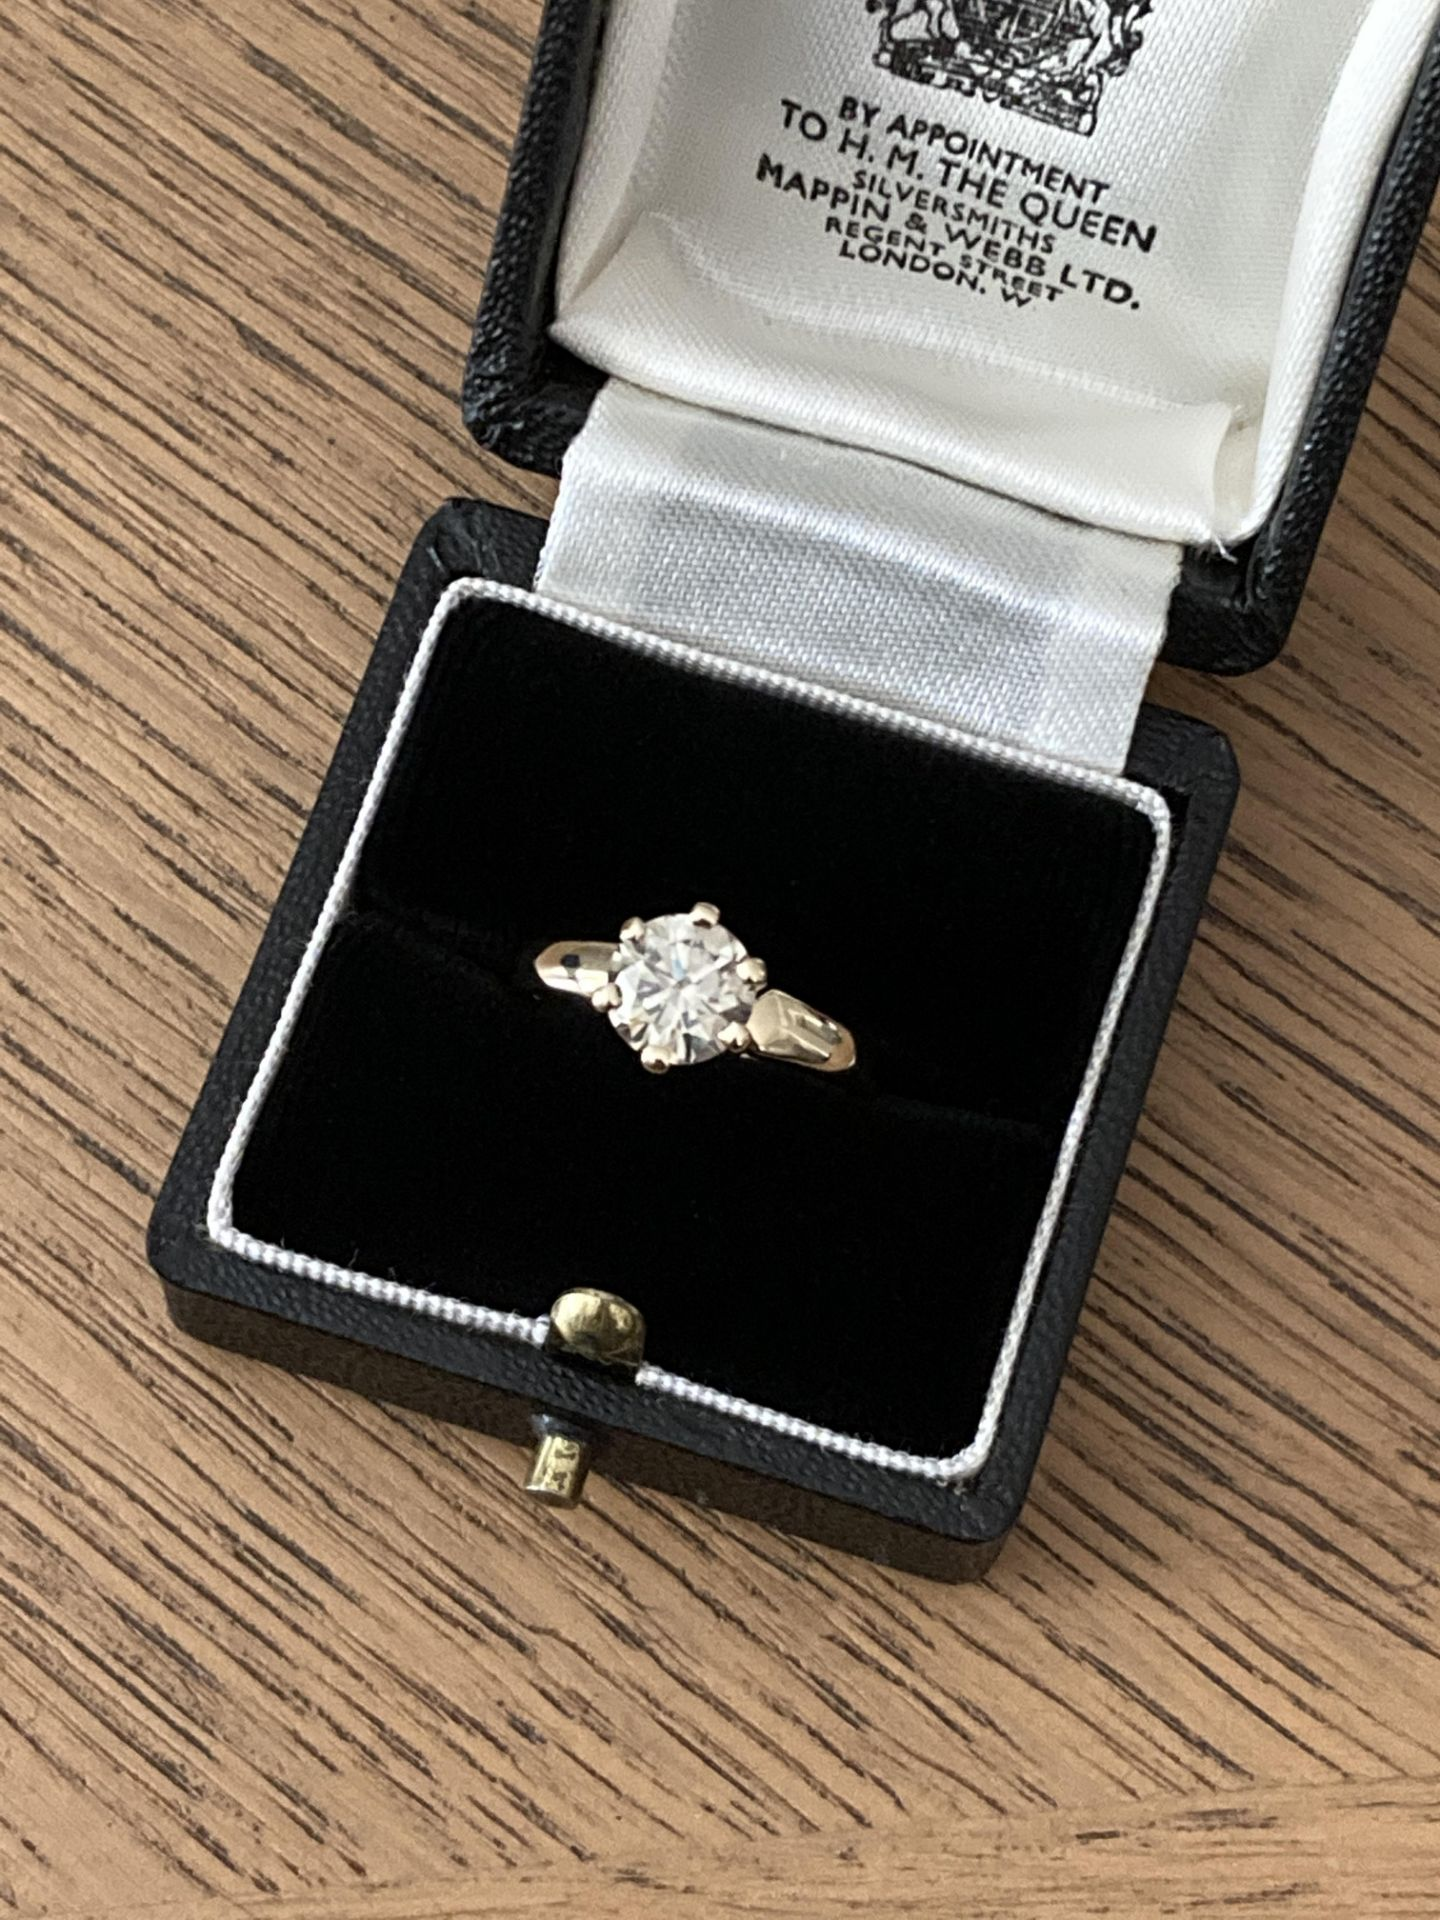 1.54CT DIAMOND SOLITAIRE RING Y. GOLD (ROUND BRILLIANT) - 2012 VALUATION £6,200 INCLUDED - Image 11 of 14